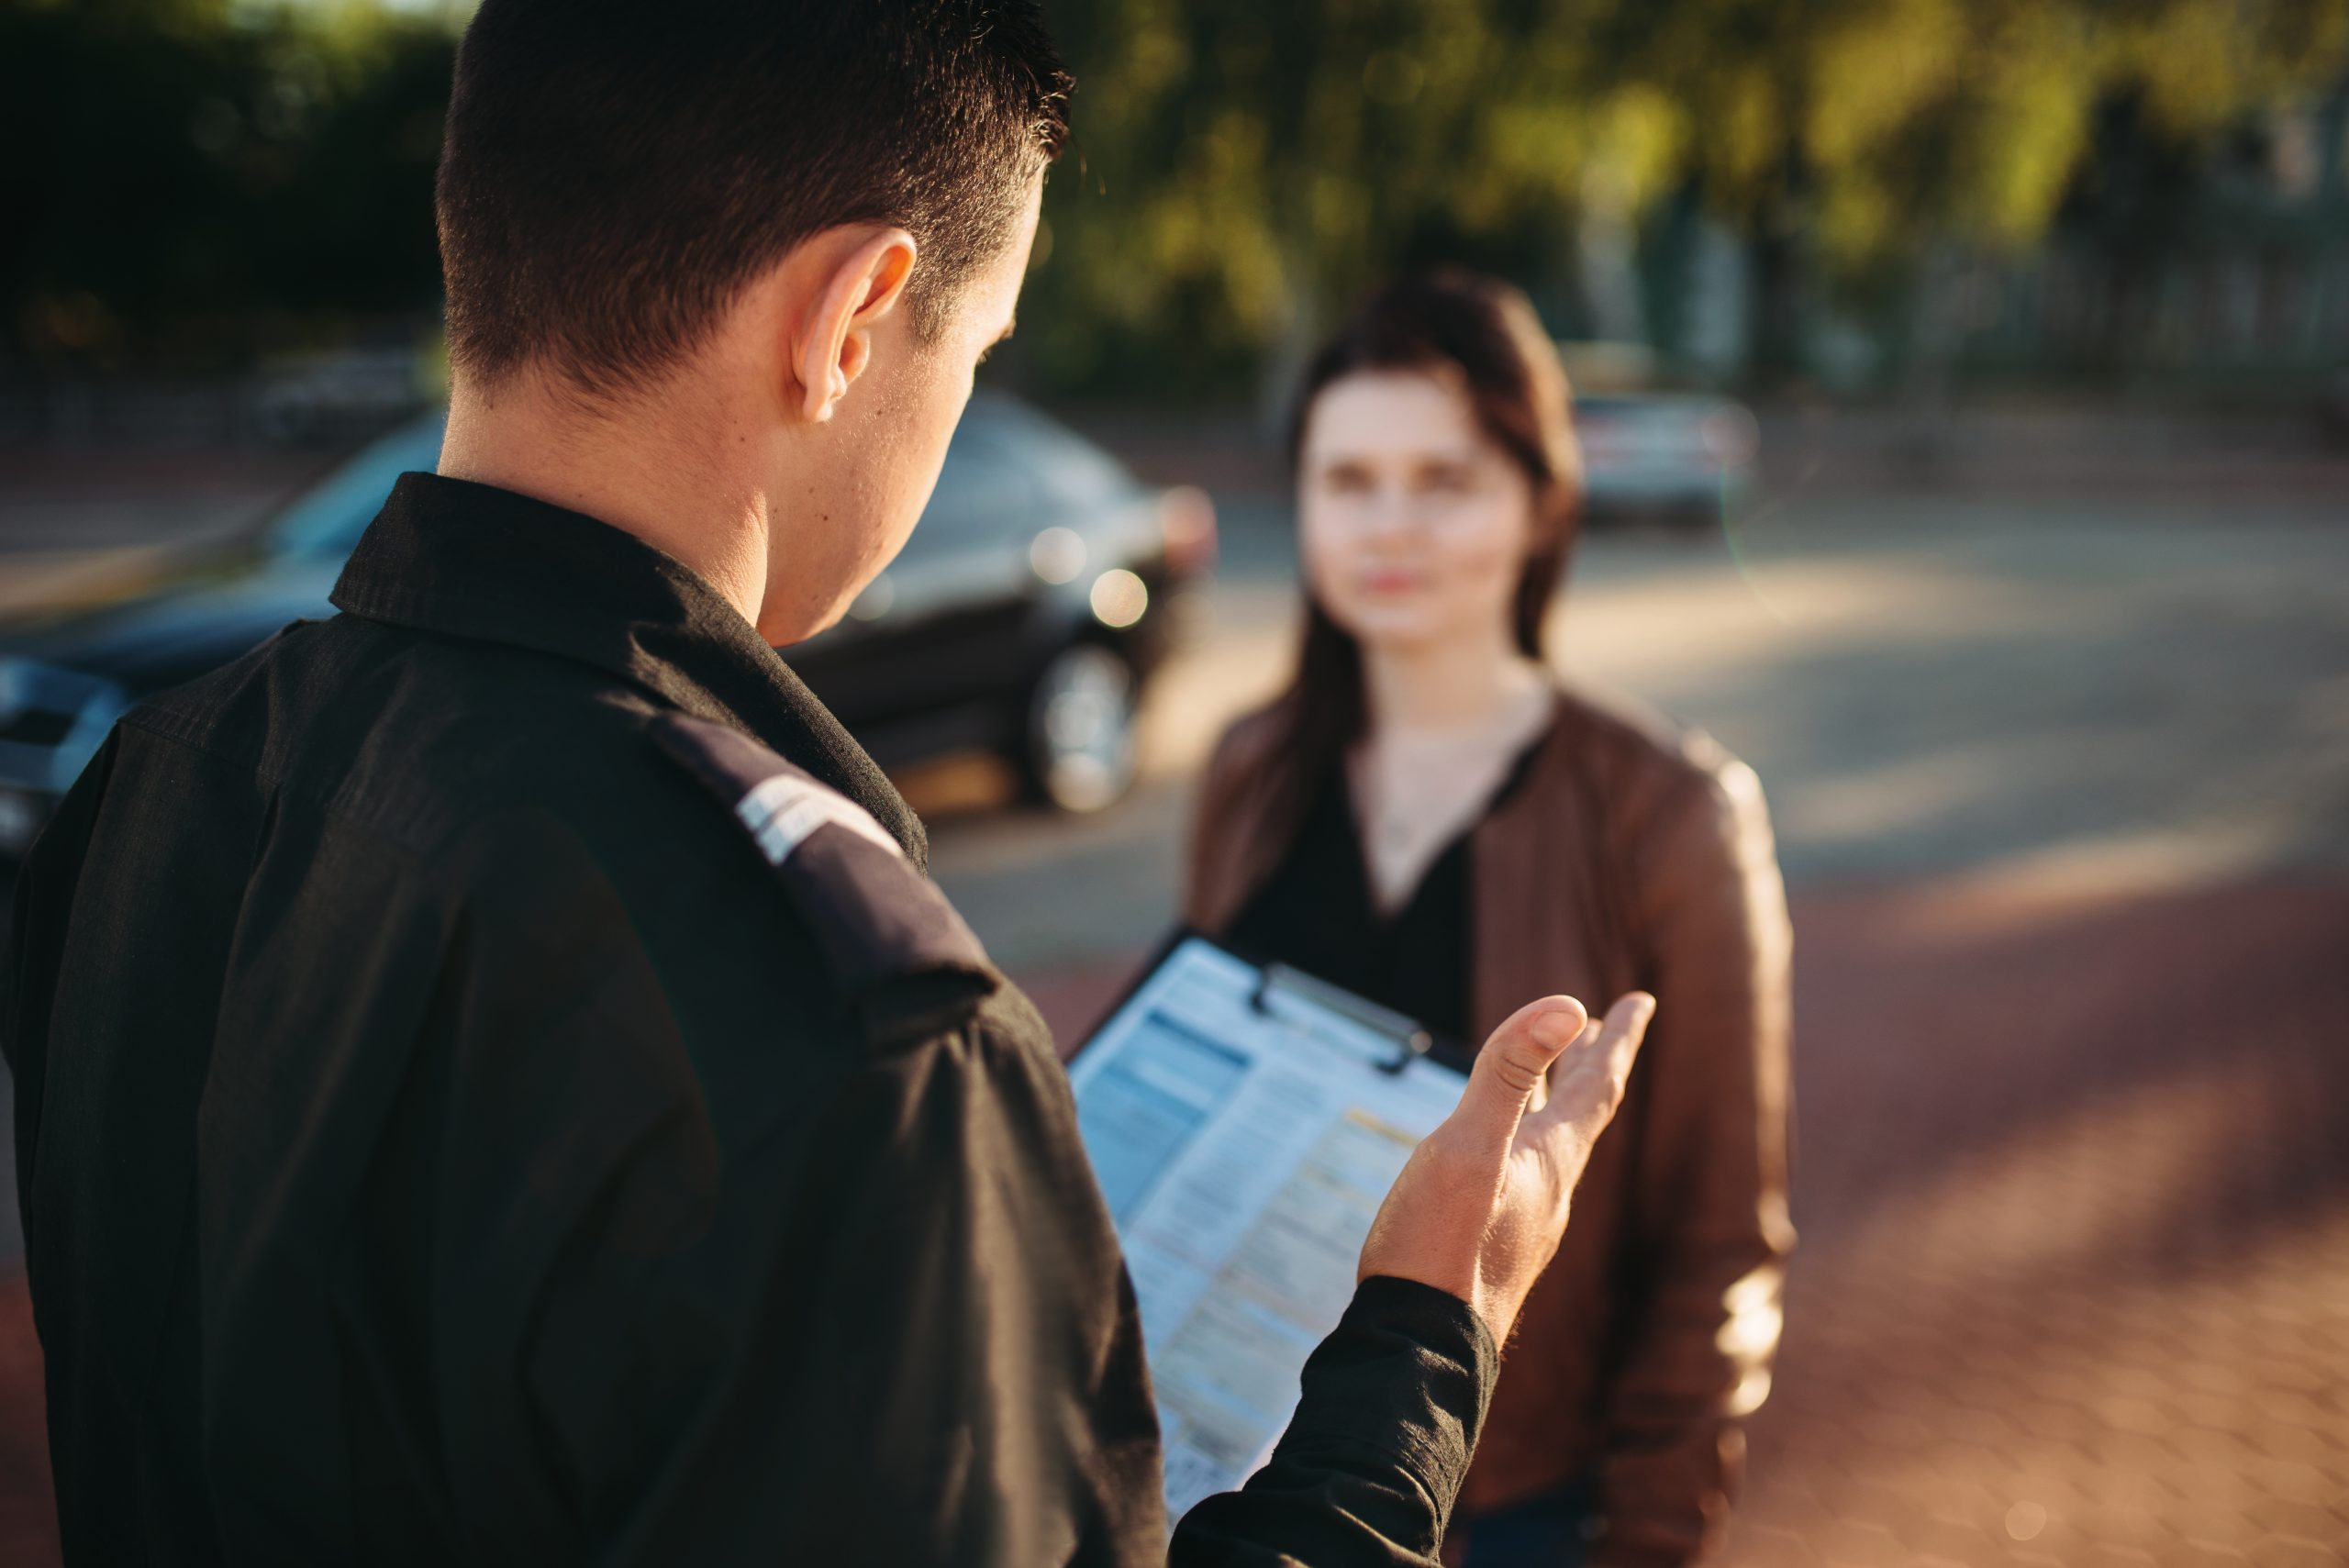 Police officers reads law to female driver